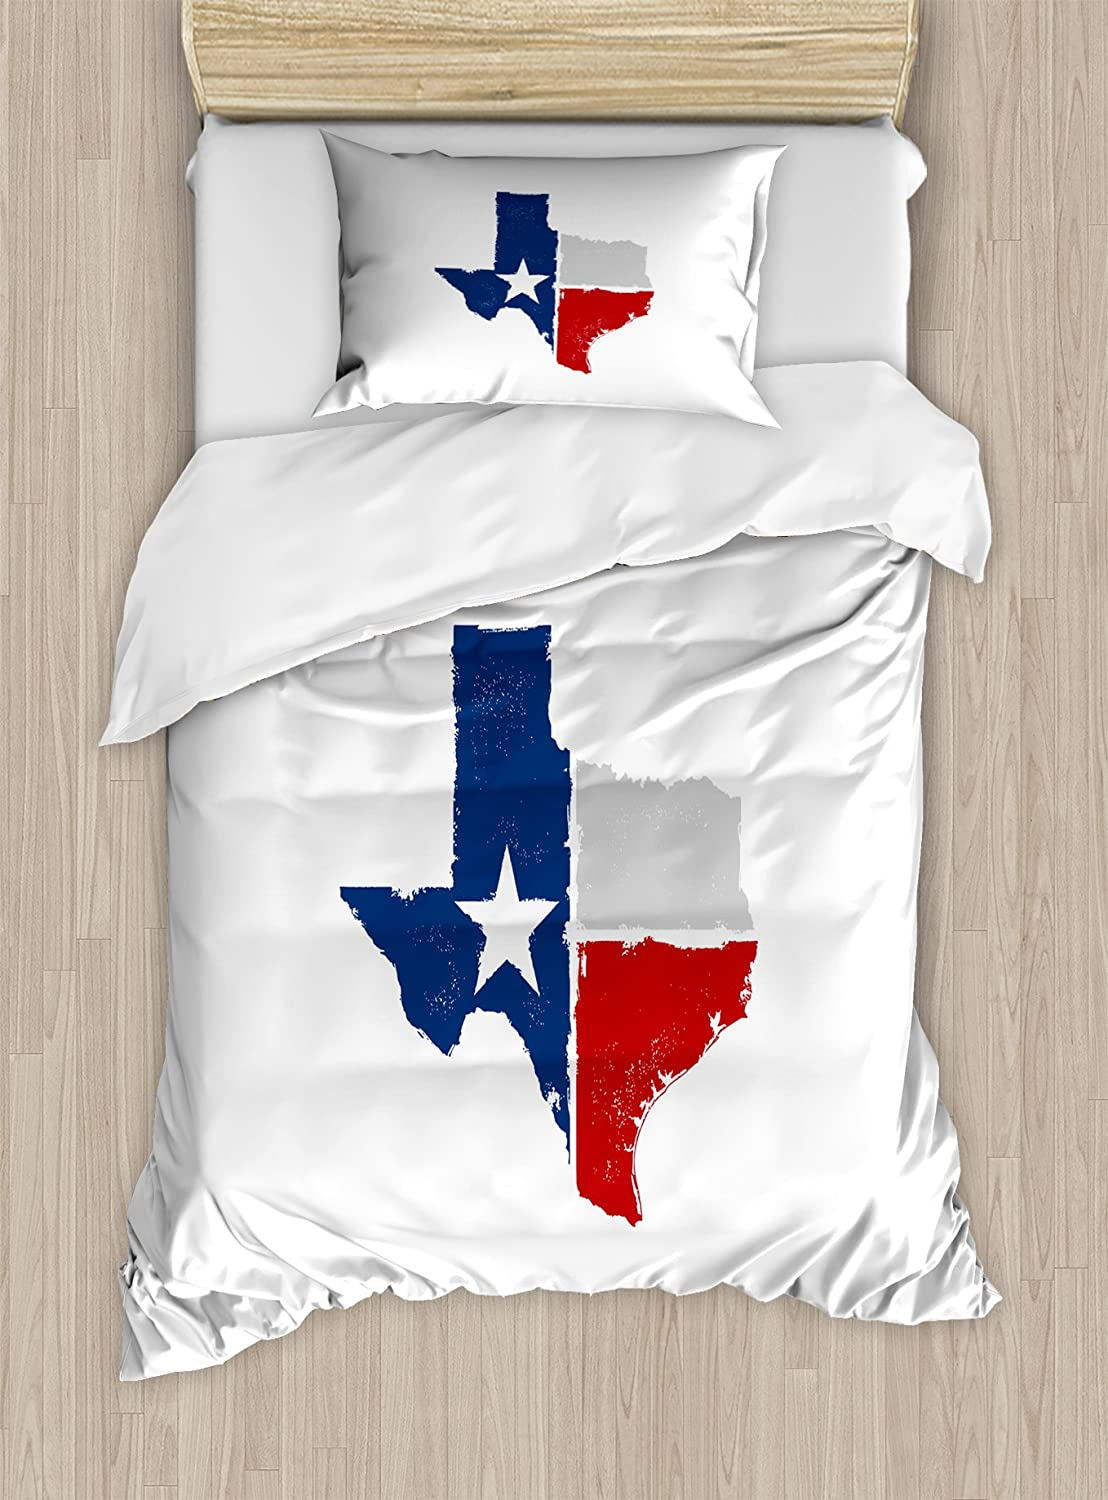 Lunarable Texas Duvet Cover Set Distressed State Outlines Fort Worth Austin Borders Flag Design The Lone Star Decorative 2 Piece Bedding Set With 1 Pillow Sham Twin Size Dark Blue Red Grey Home Kitchen